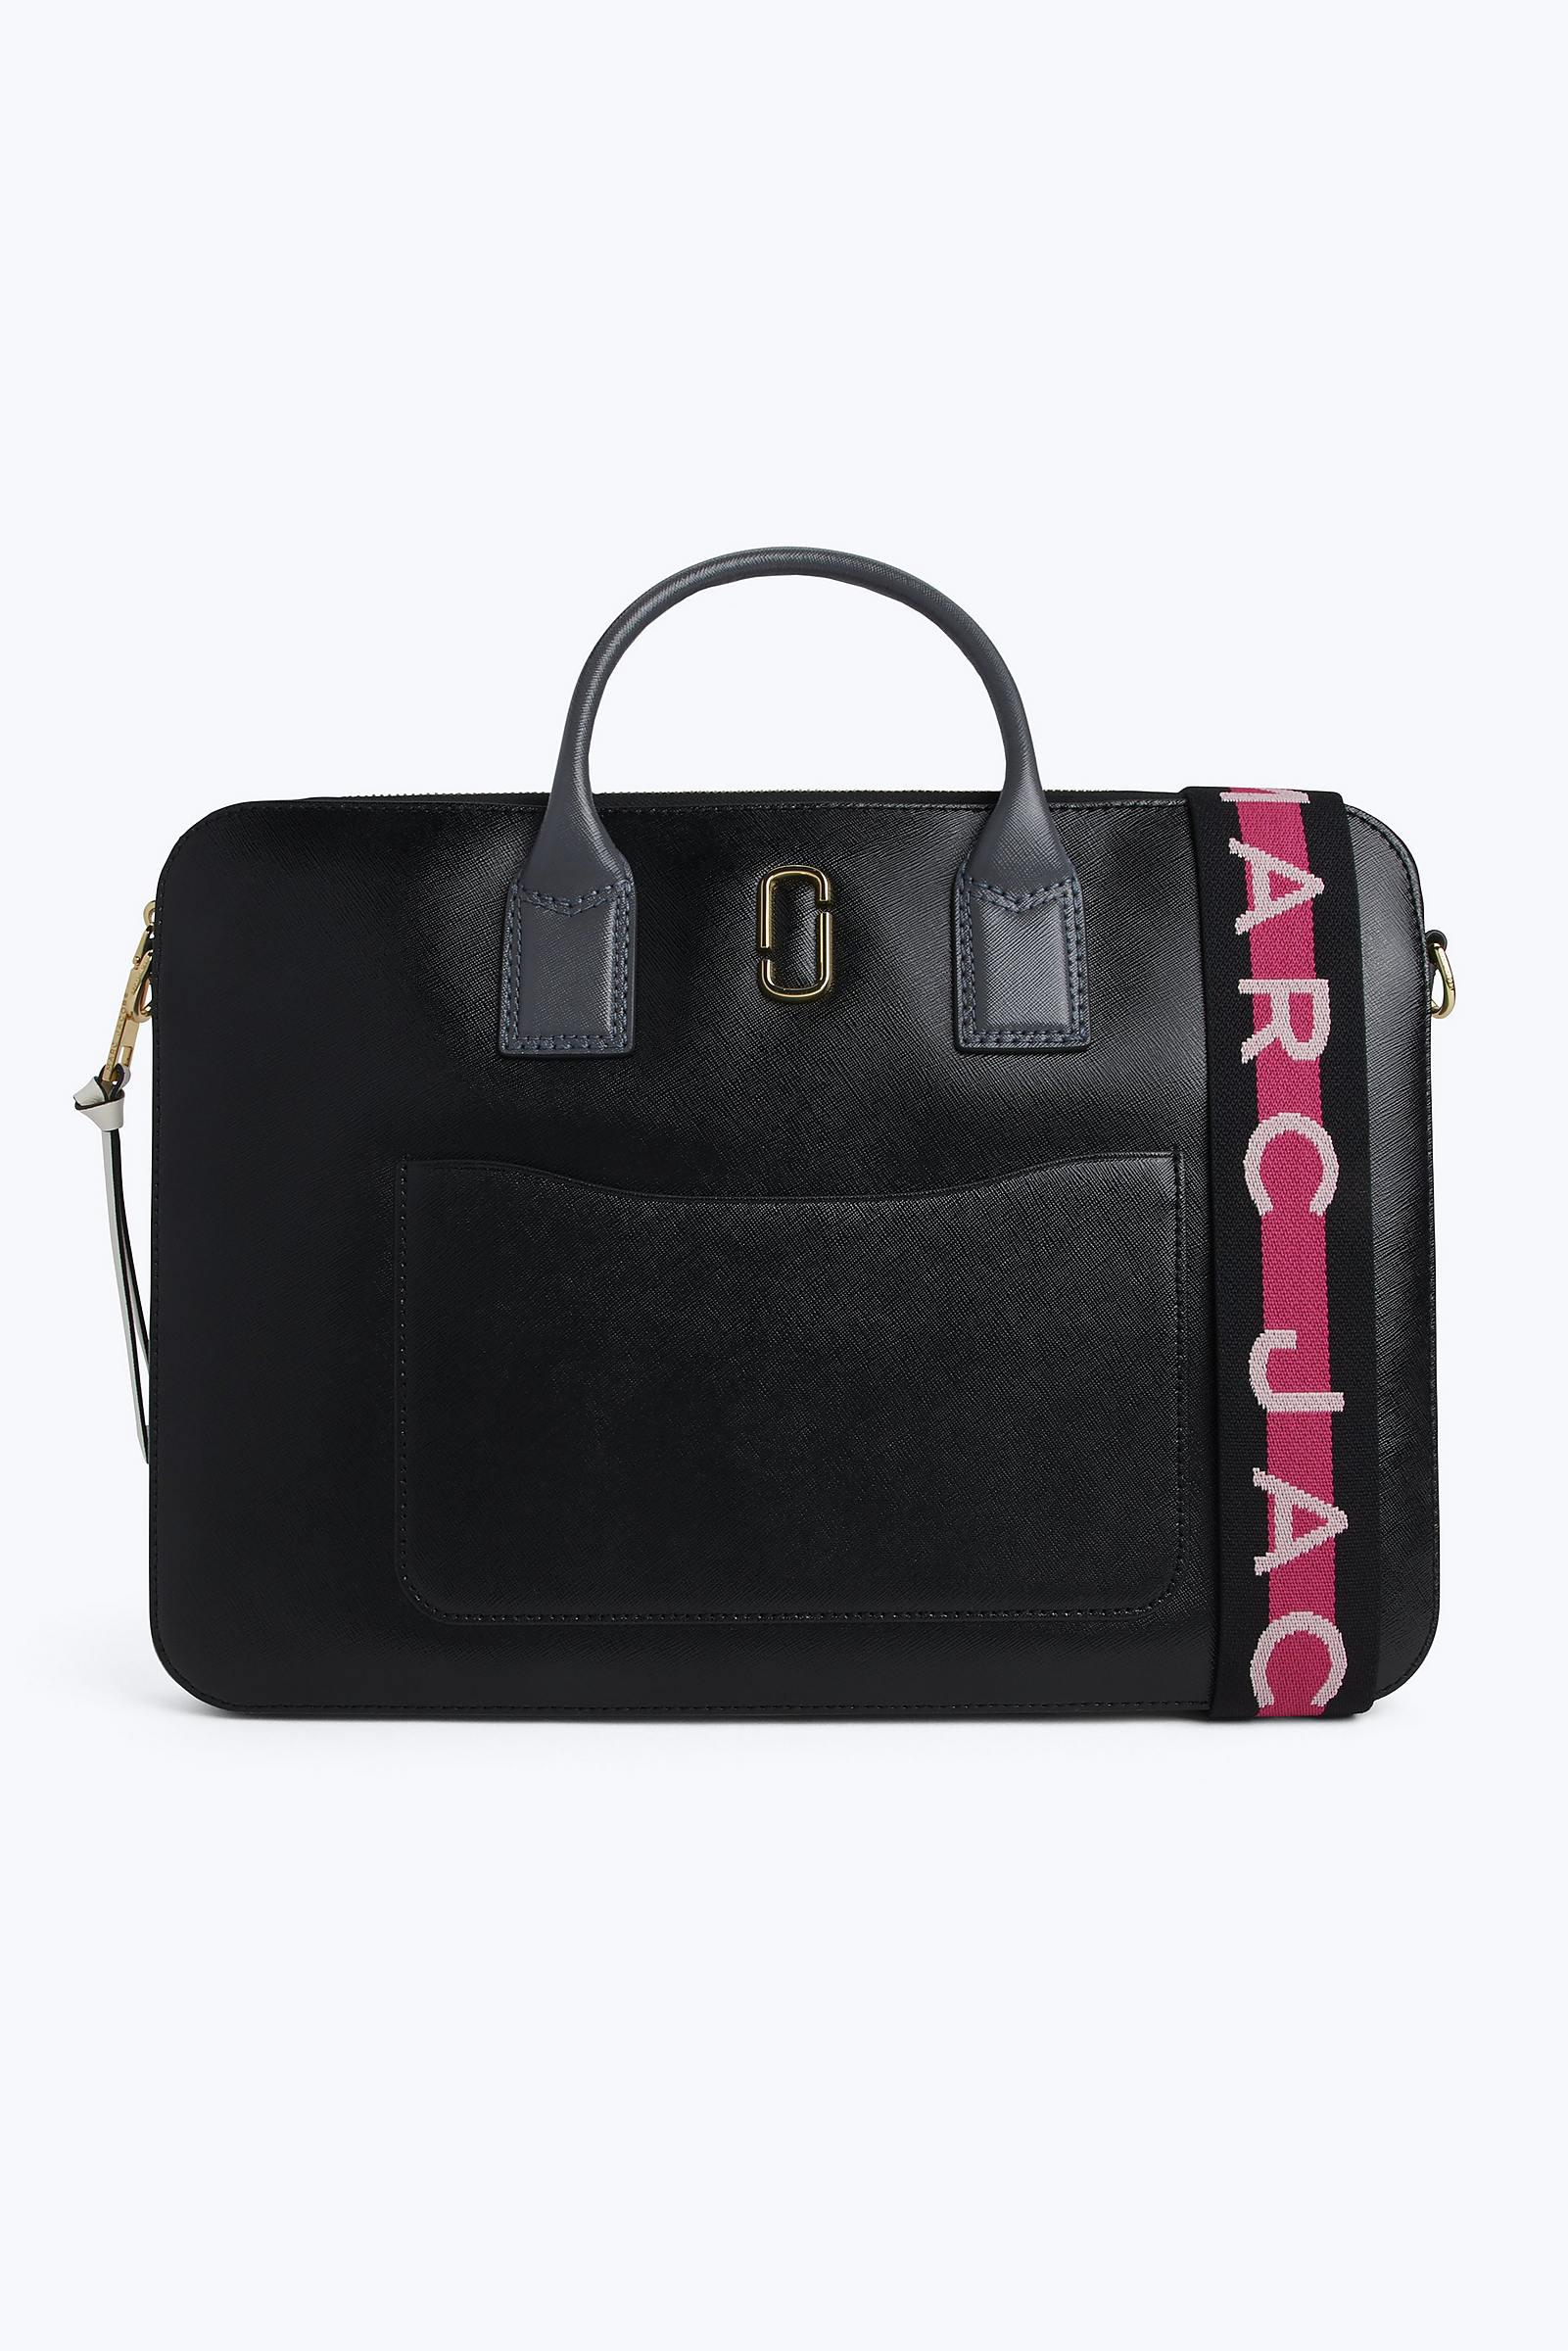 9f78b6c043f4 Lyst - Marc Jacobs Snapshot Commuter 15